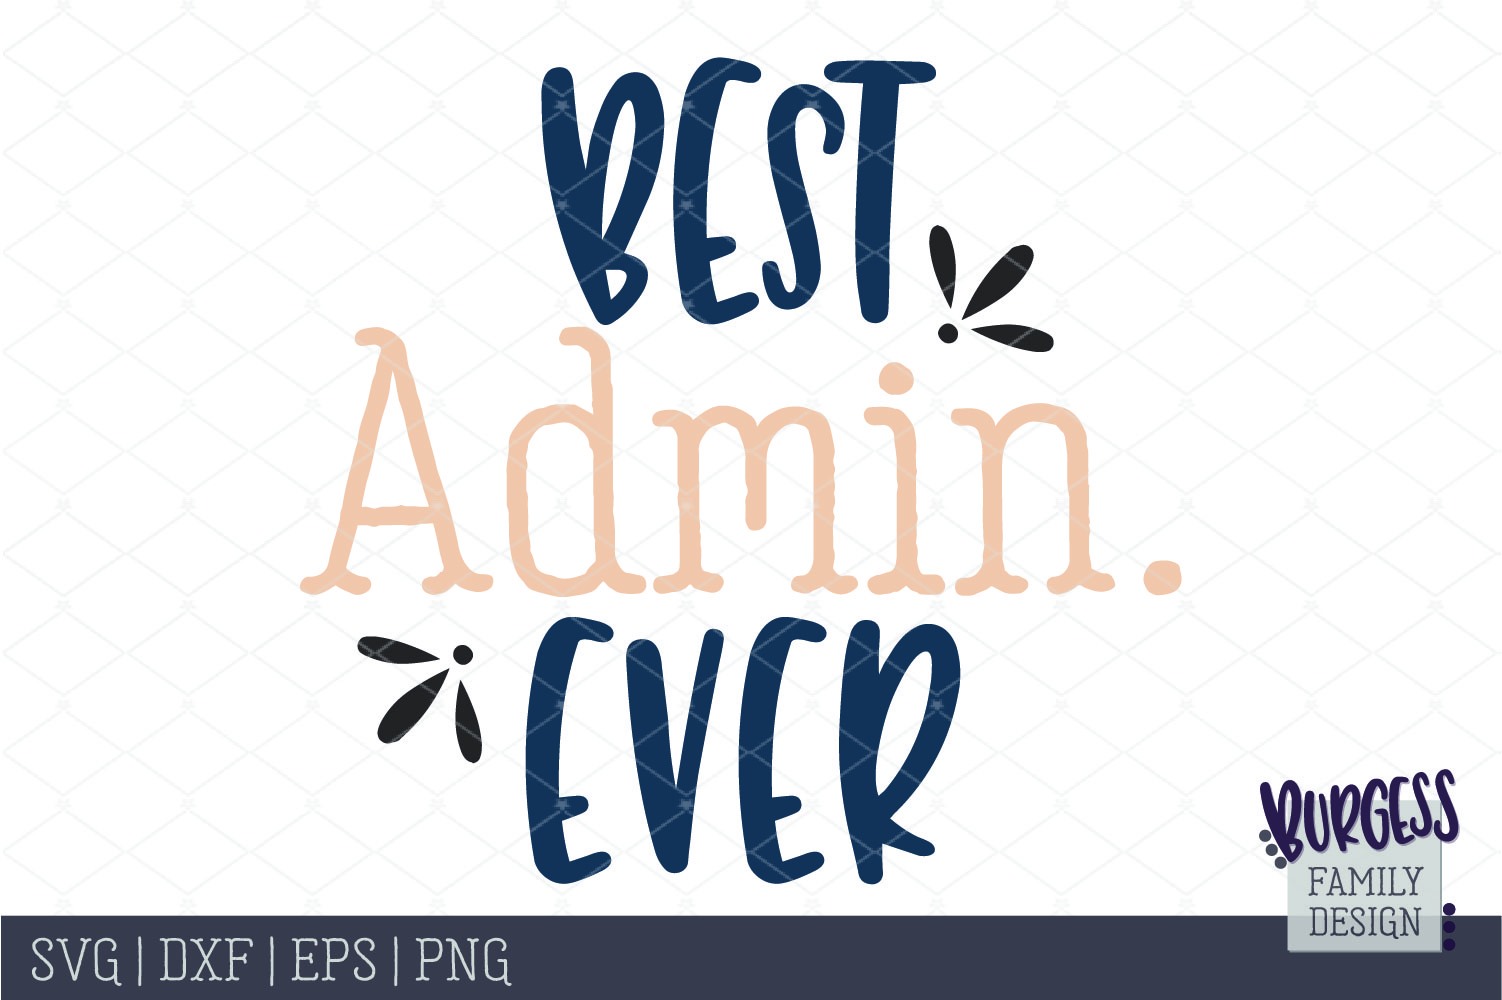 Best admin ever | SVG DXF EPS PNG example image 2